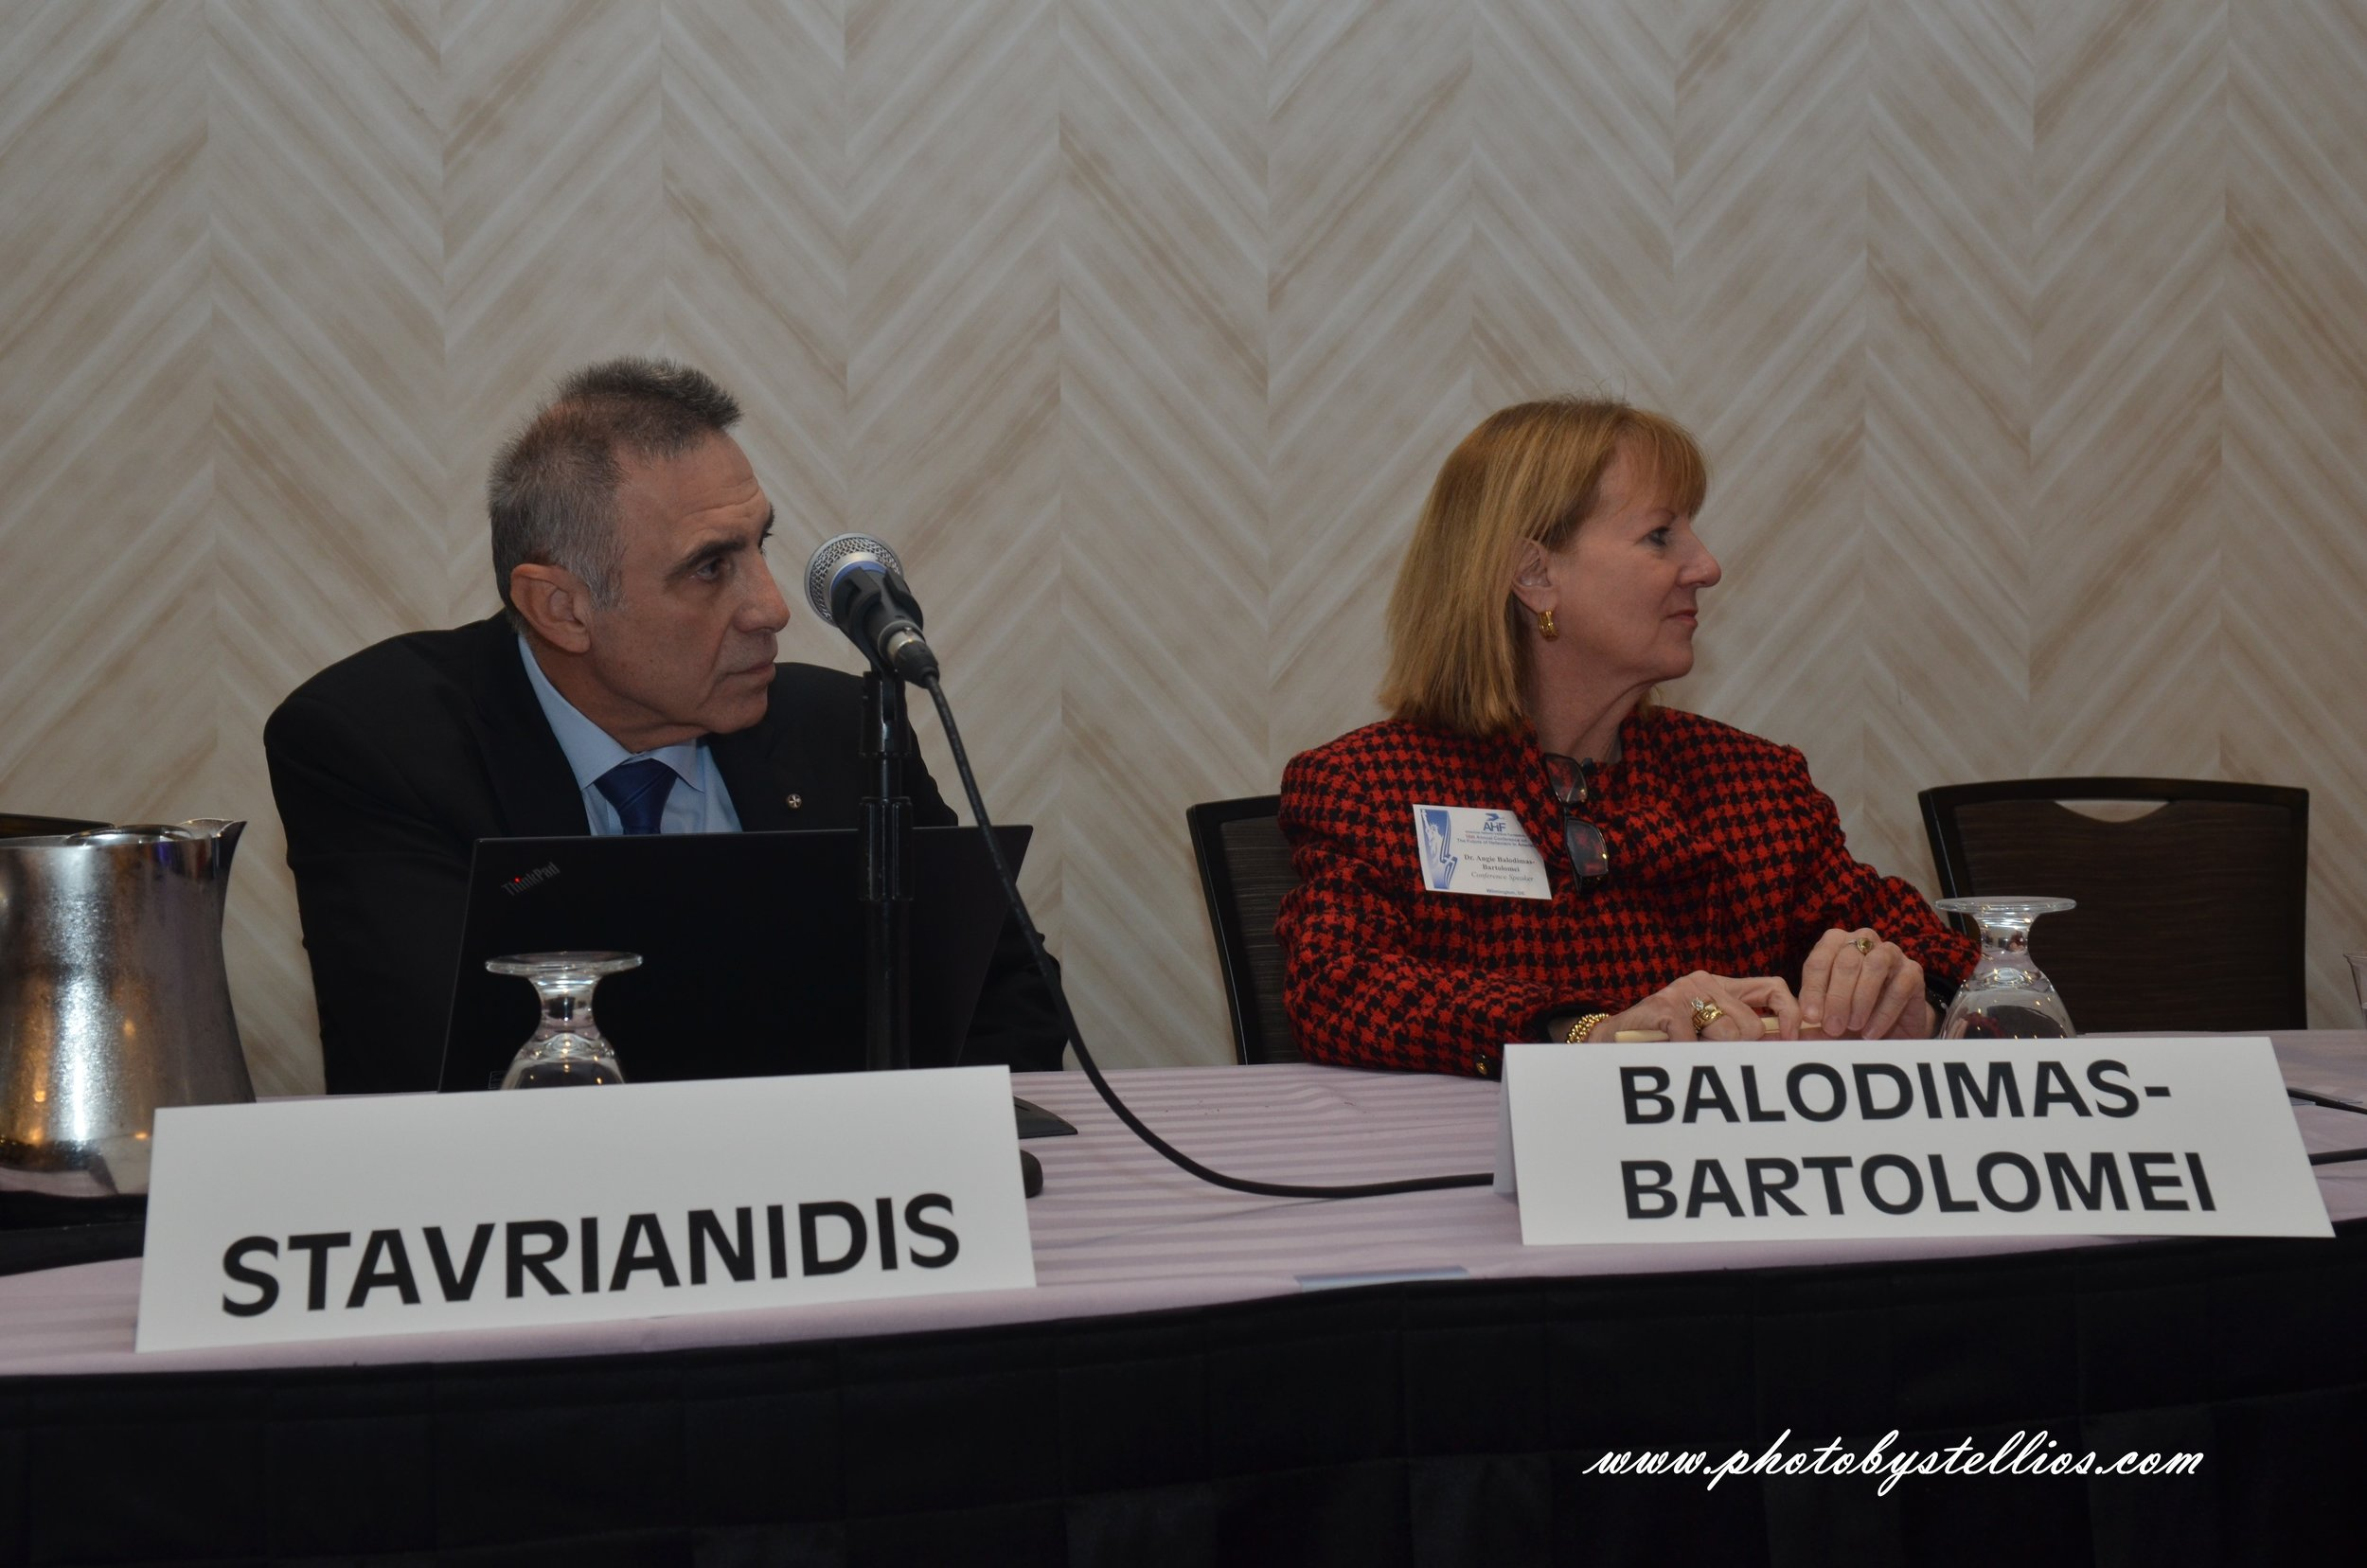 Dr. Panos Stavrianidis, Dr. Angelyn Balodimas-Bartolomei.